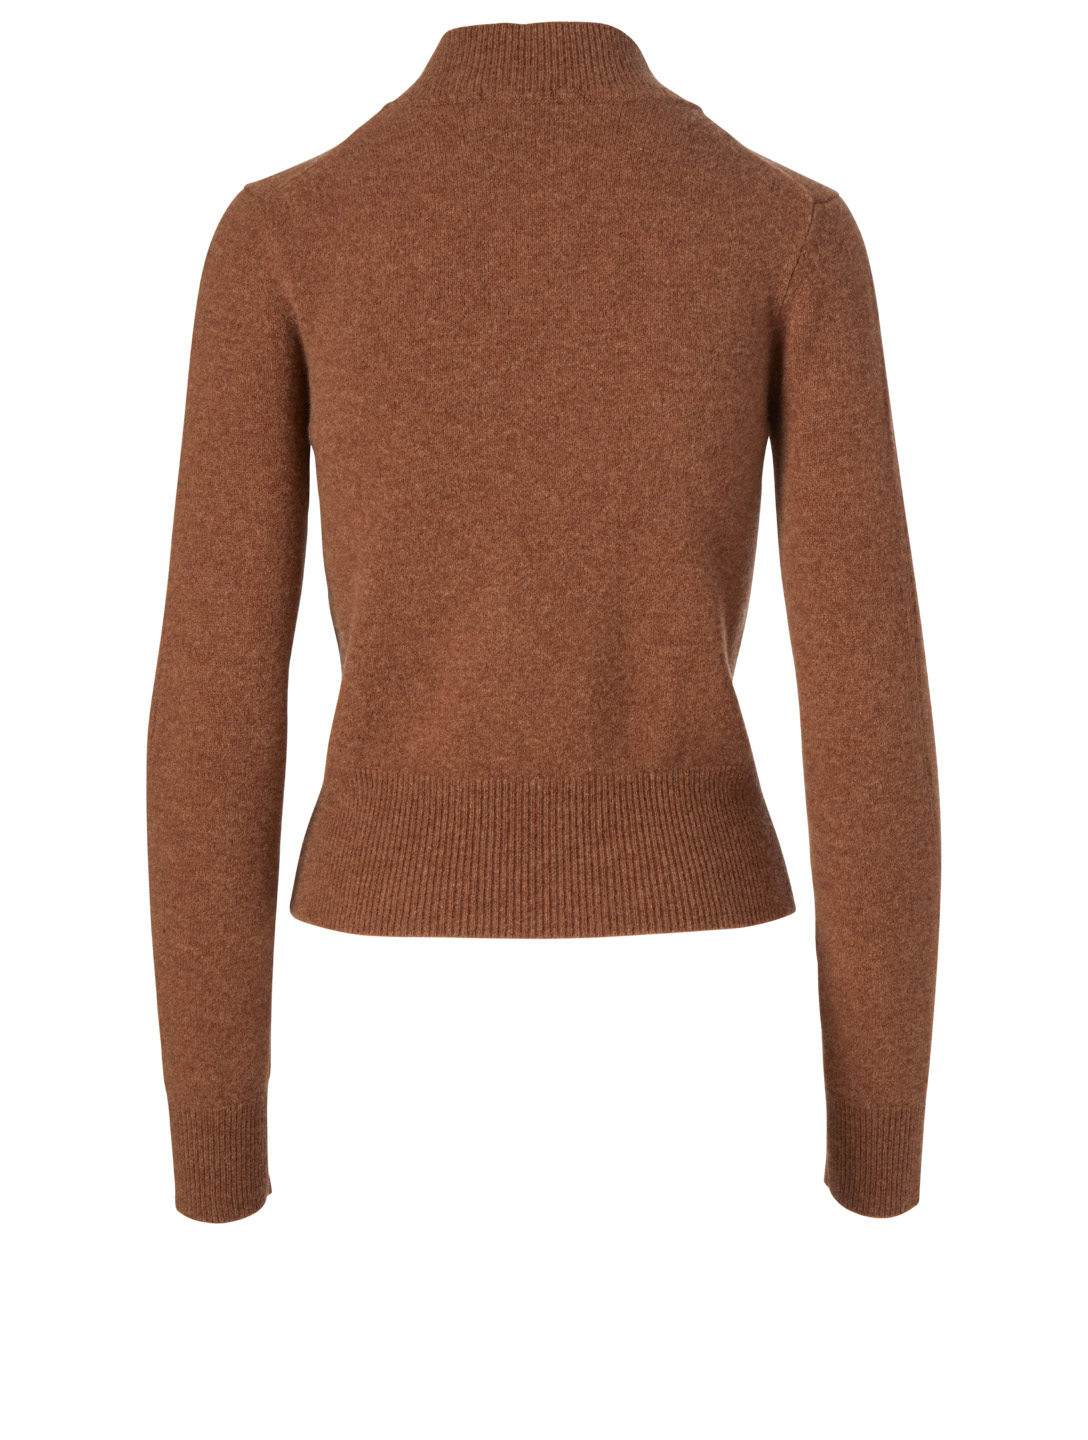 VICTORIA BECKHAM Wool Cropped Sweater Women's Beige